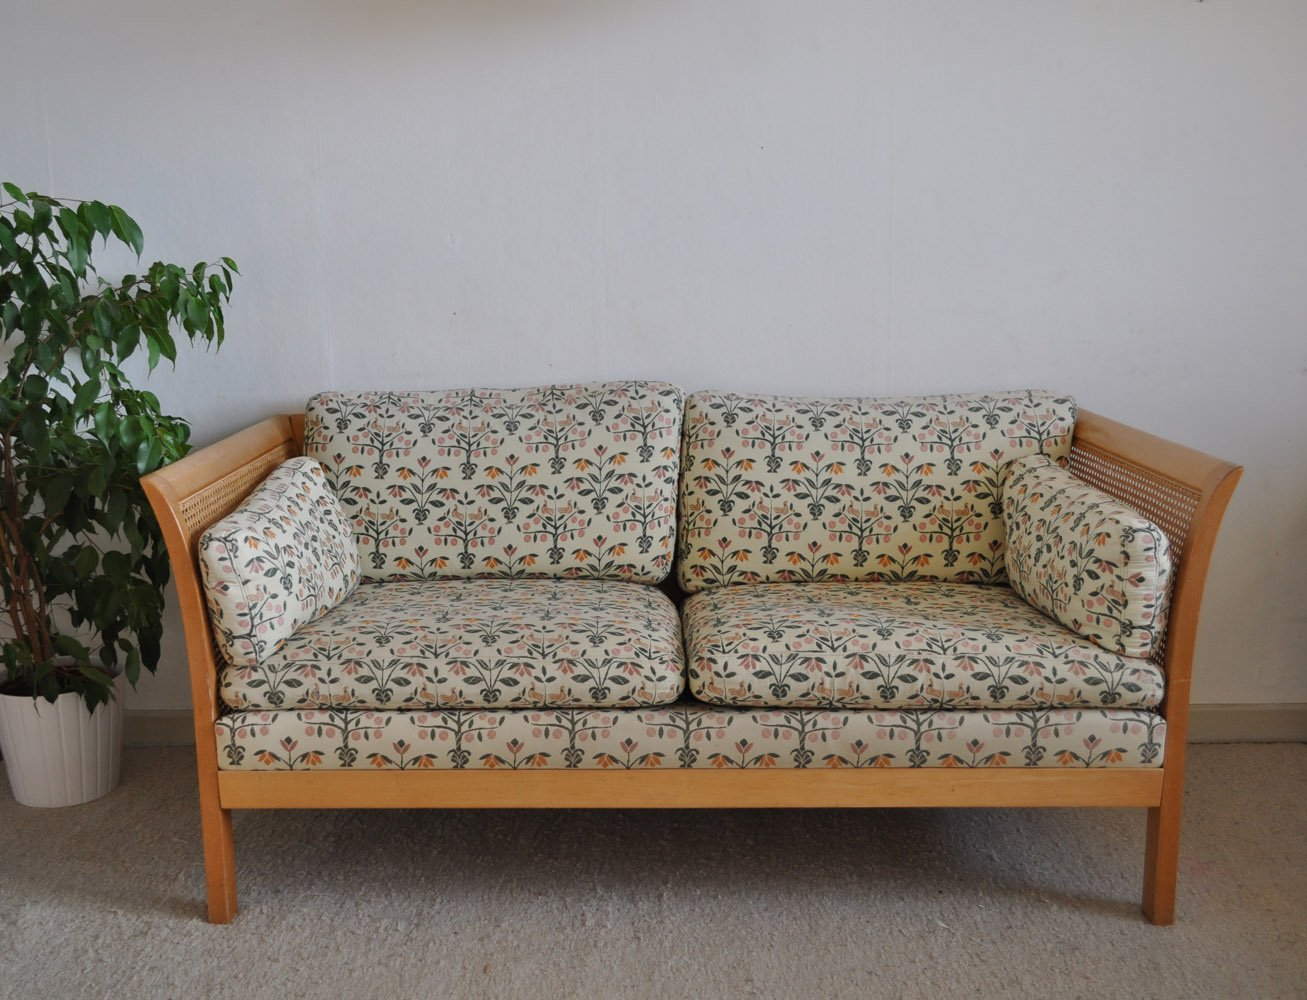 Vintage Rattan Two Seater Sofa from Arne Norell for sale  : vintage rattan two seater sofa from arne norell 1 from www.pamono.com size 1307 x 1000 jpeg 163kB